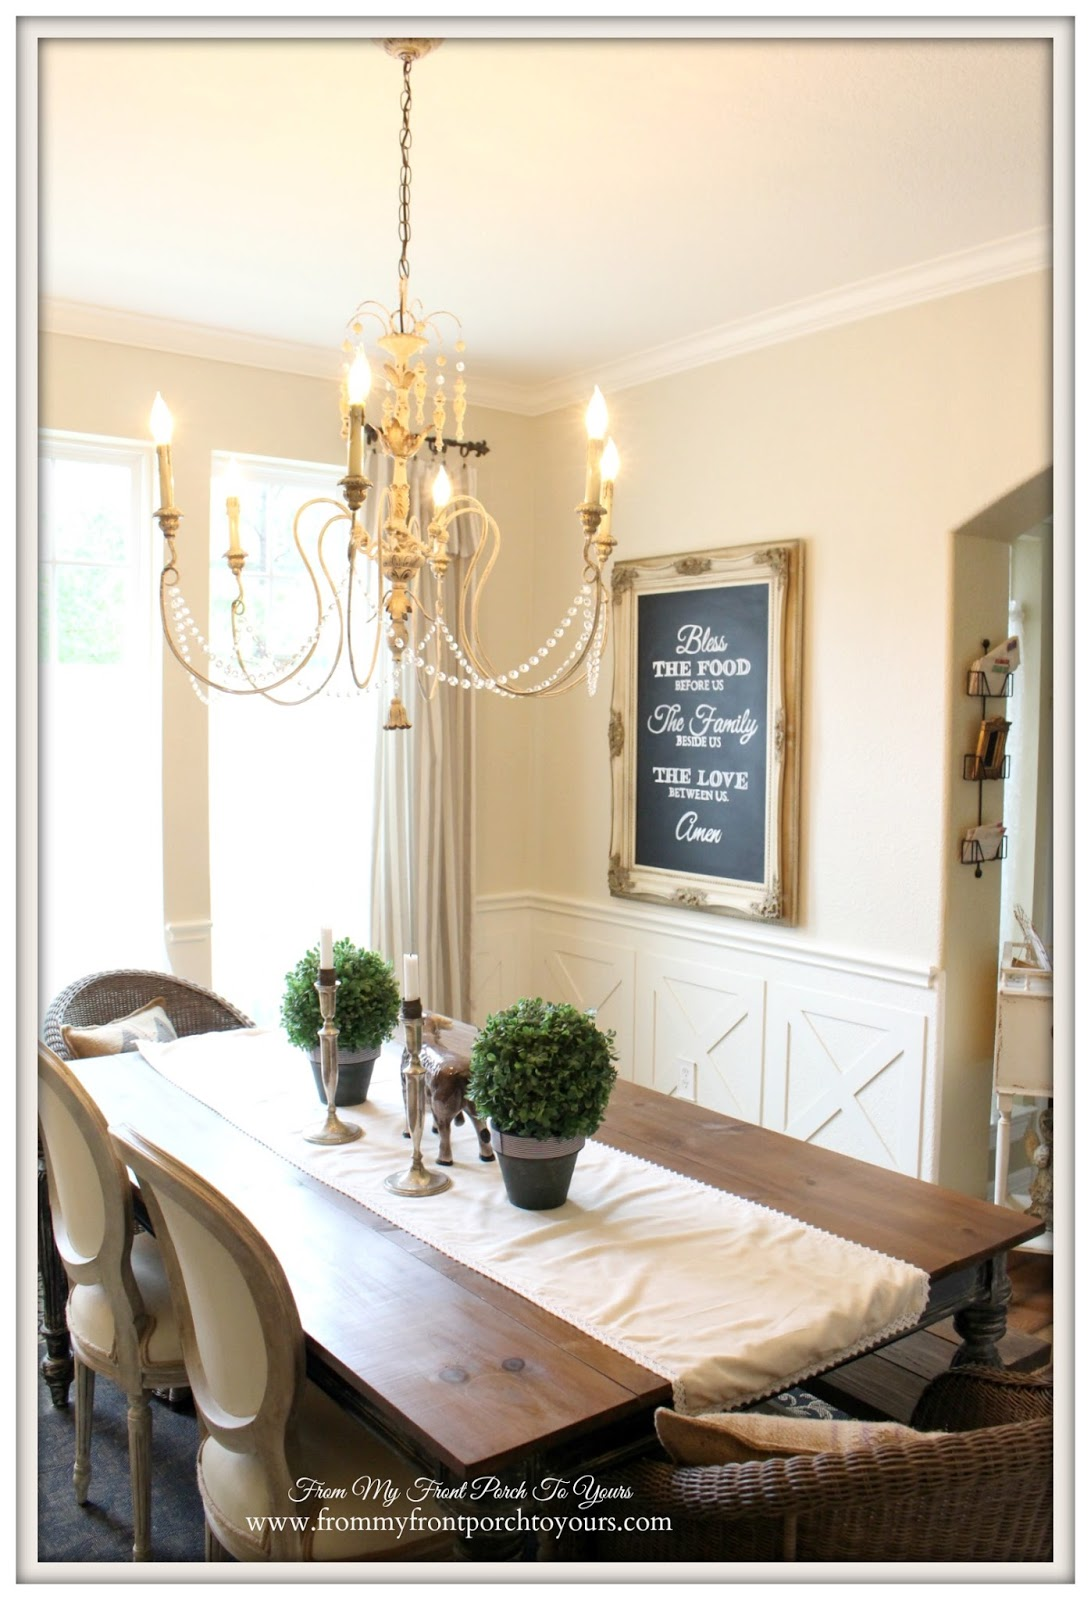 Dining Room Chalkboard French Country Dining Room  From My Front Porch To  Yours. From My Front Porch To Yours  French Country Farmhouse Dining Room